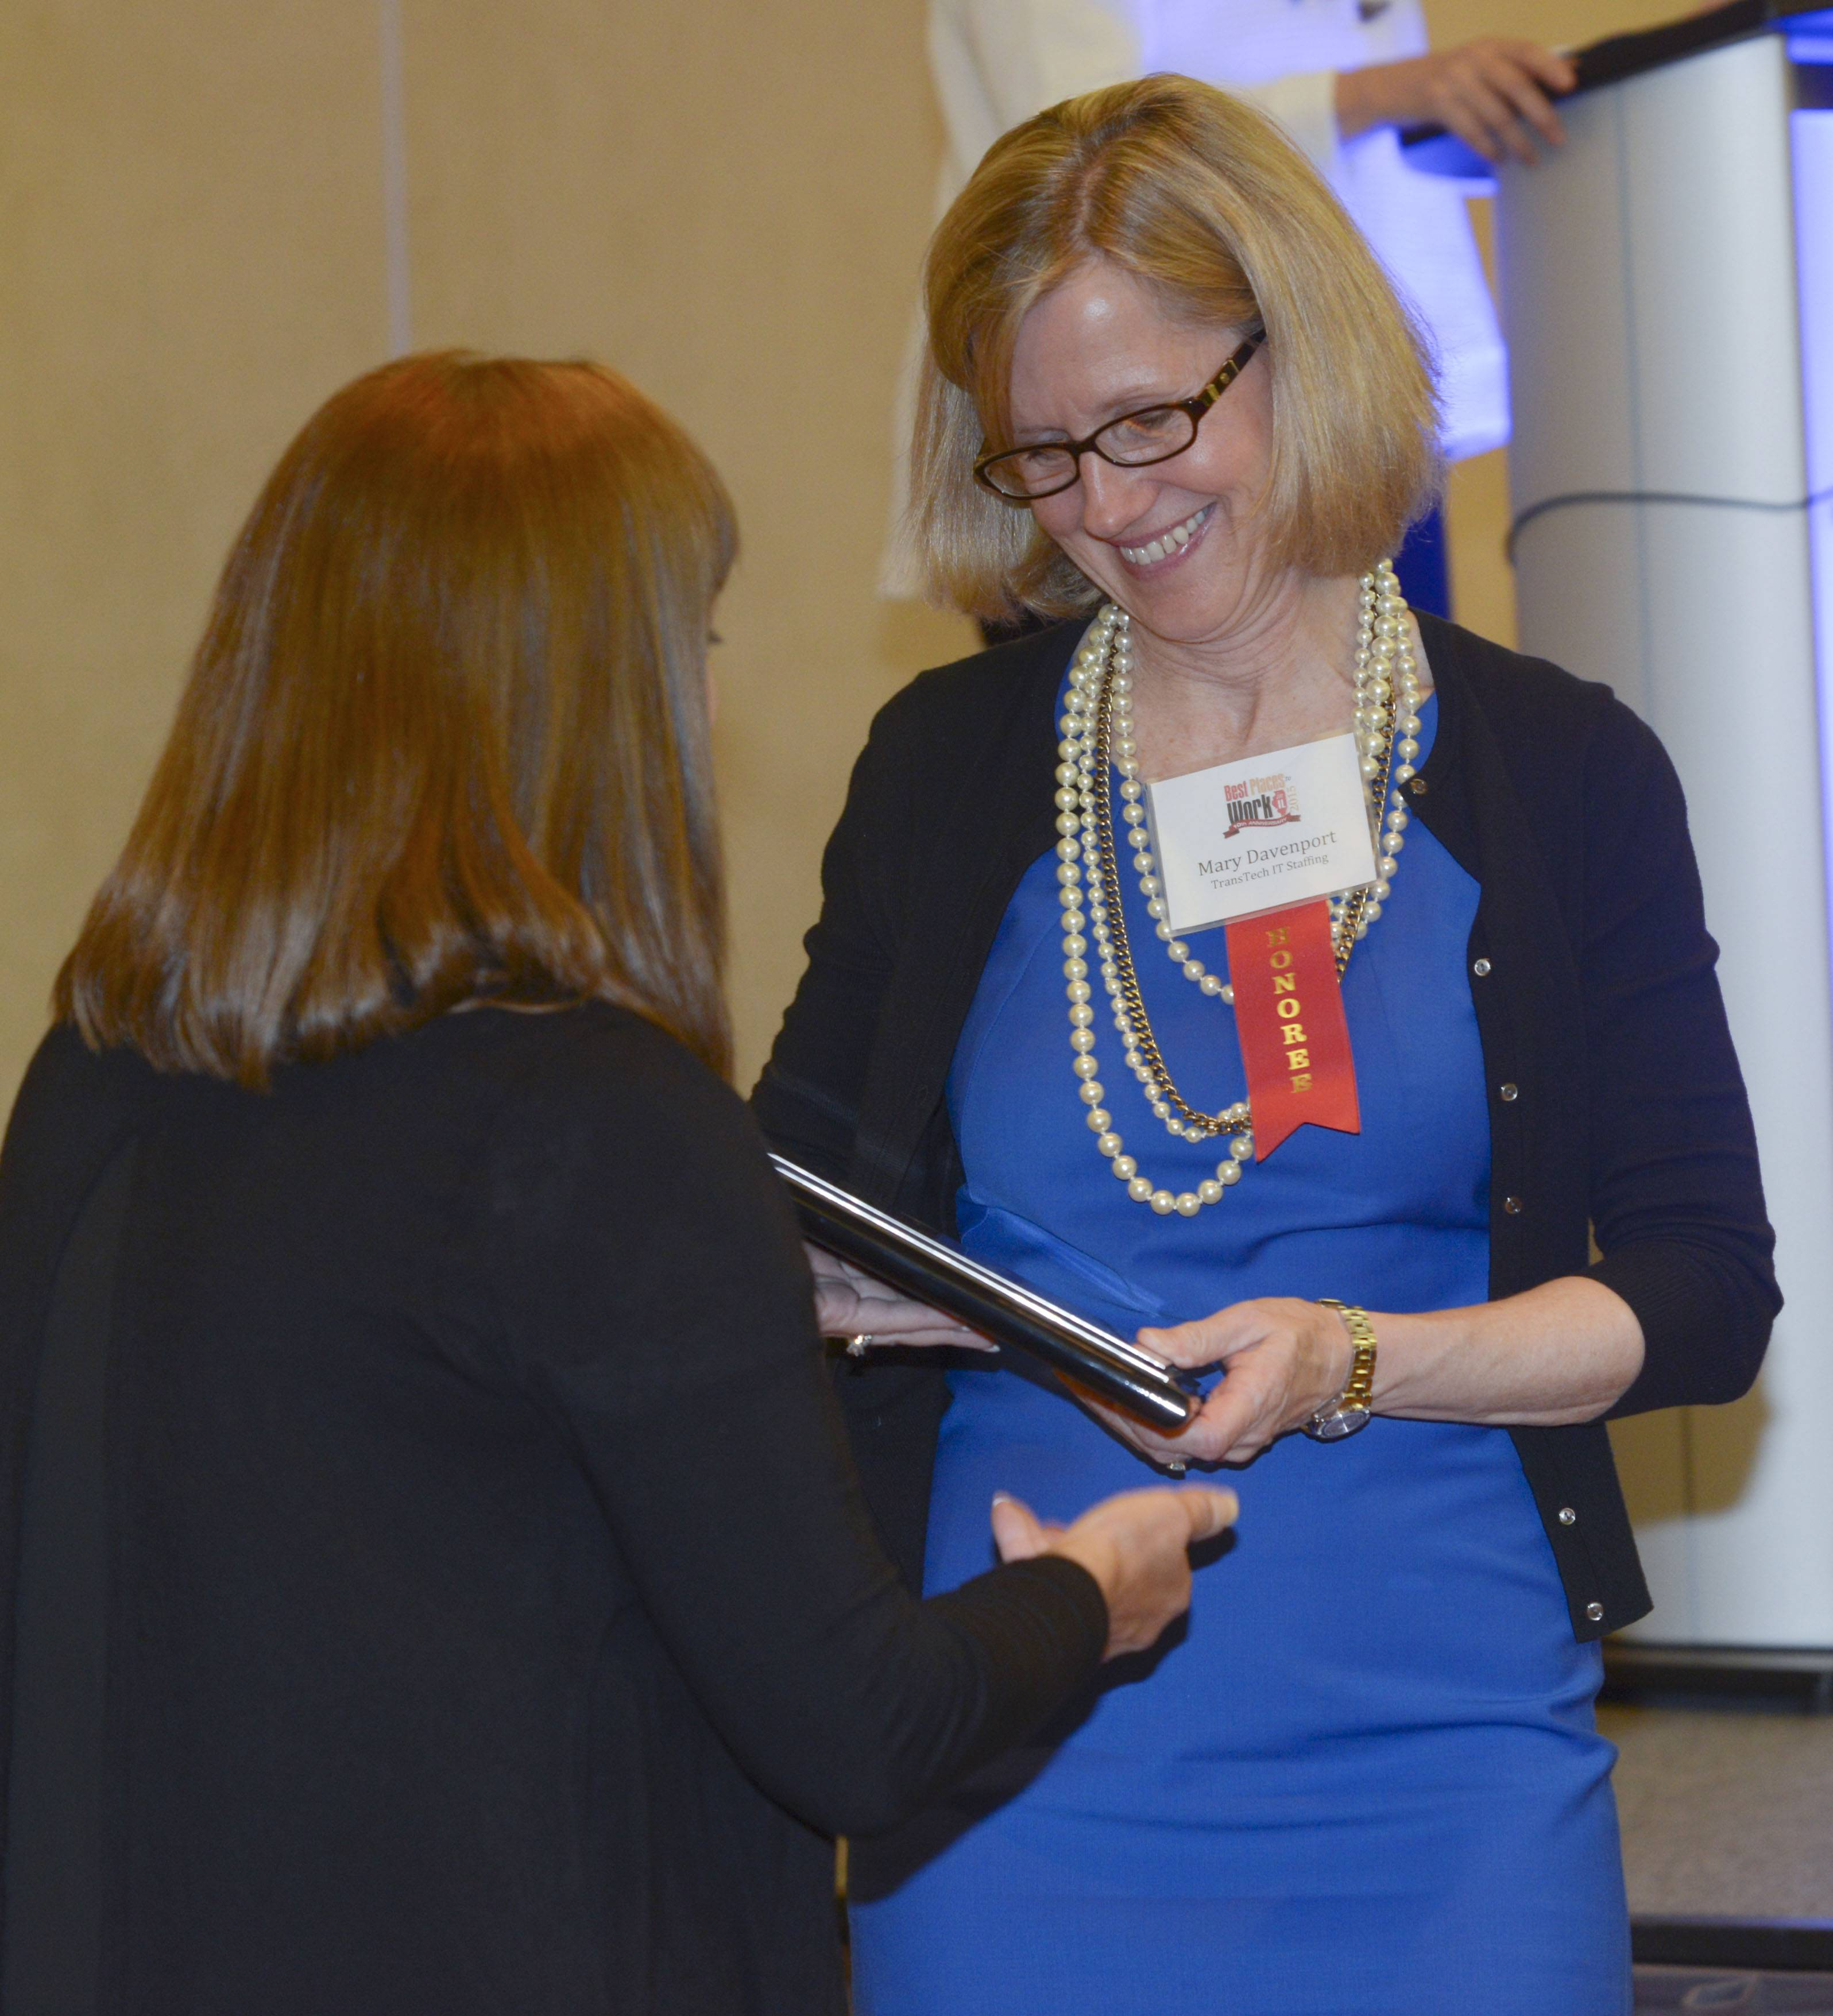 Mary Davenport of TransTech IT Staffing of Itasca accepts the 5th place award for Small Employers during the Daily Herald Business Ledger's 10th annual Best Places to Work in Illinois award ceremony at the Oak Brook Hill Resort & Conference Center in Oak Brook Wednesday night.